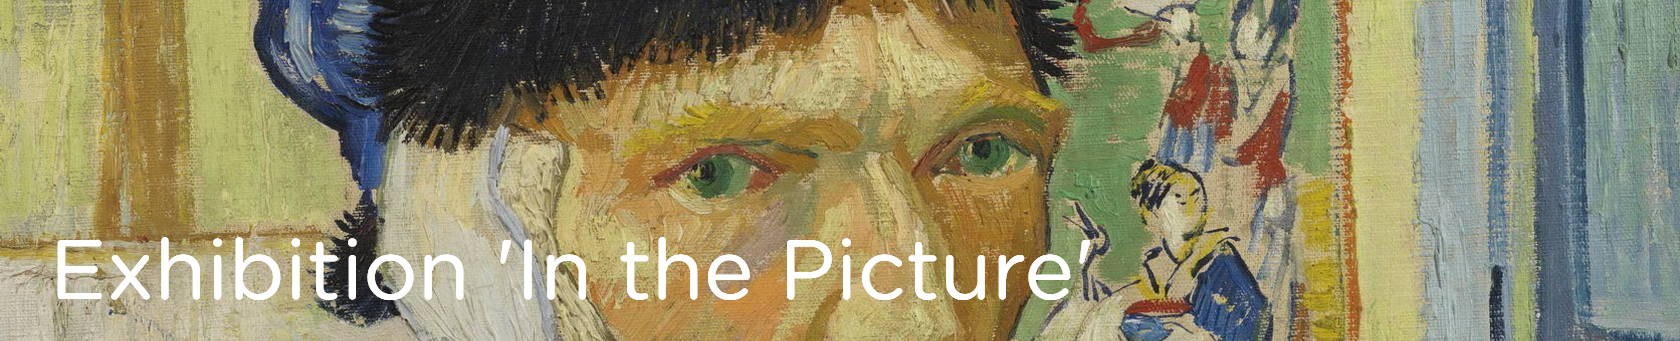 Temporary exhibition at the Van Gogh Museum: 'In the Picture'